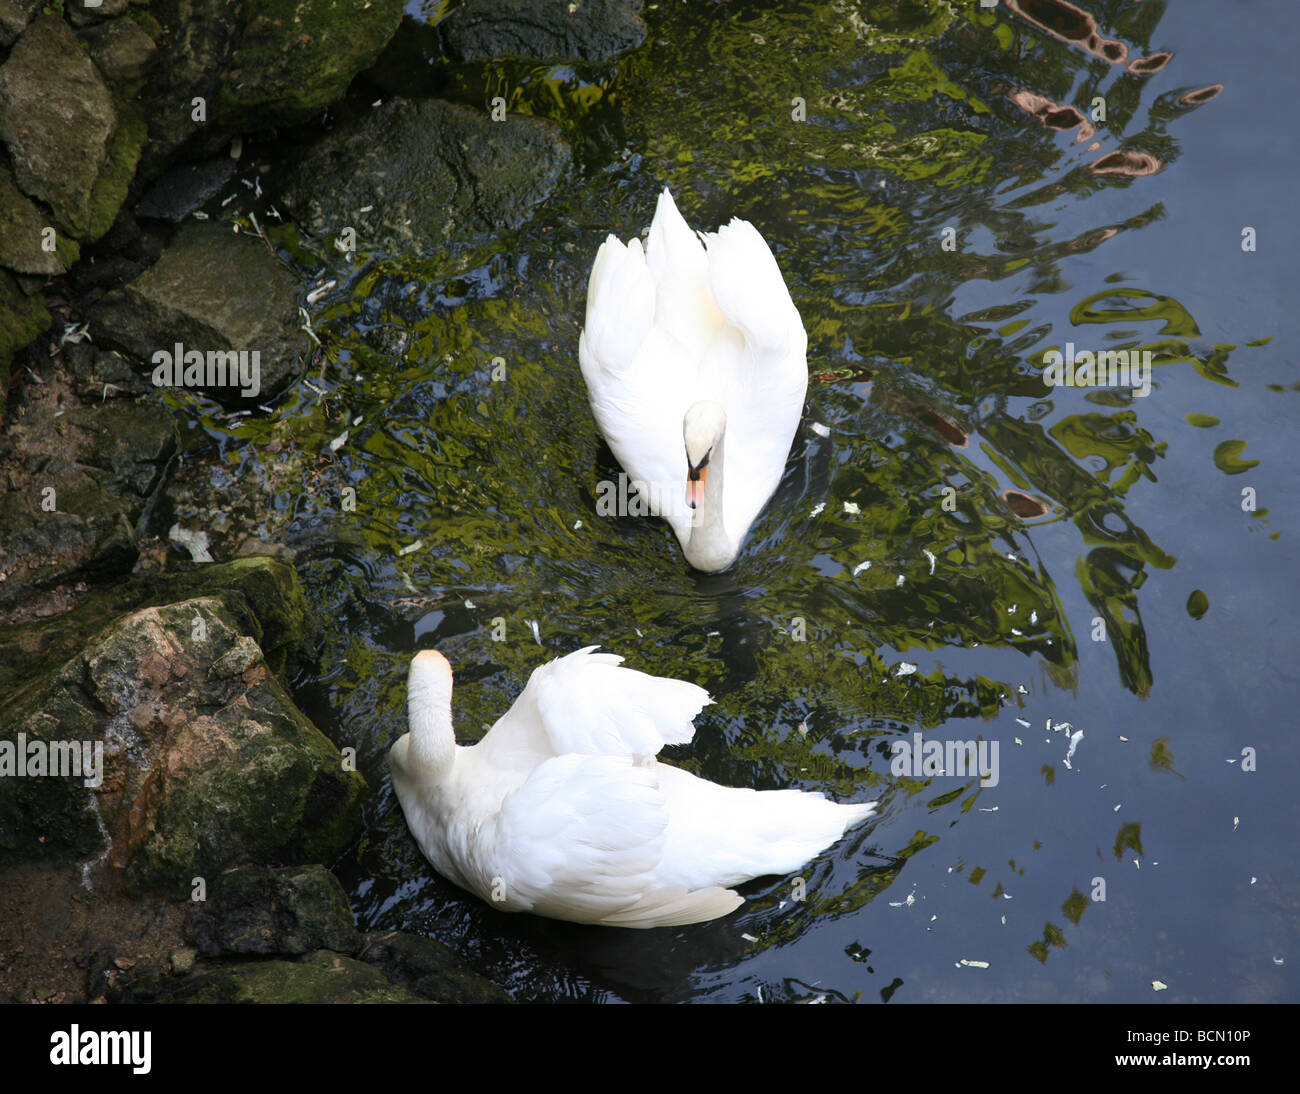 Two swans swimming together in pond reflections from the trees on  water surface. Stock Photo